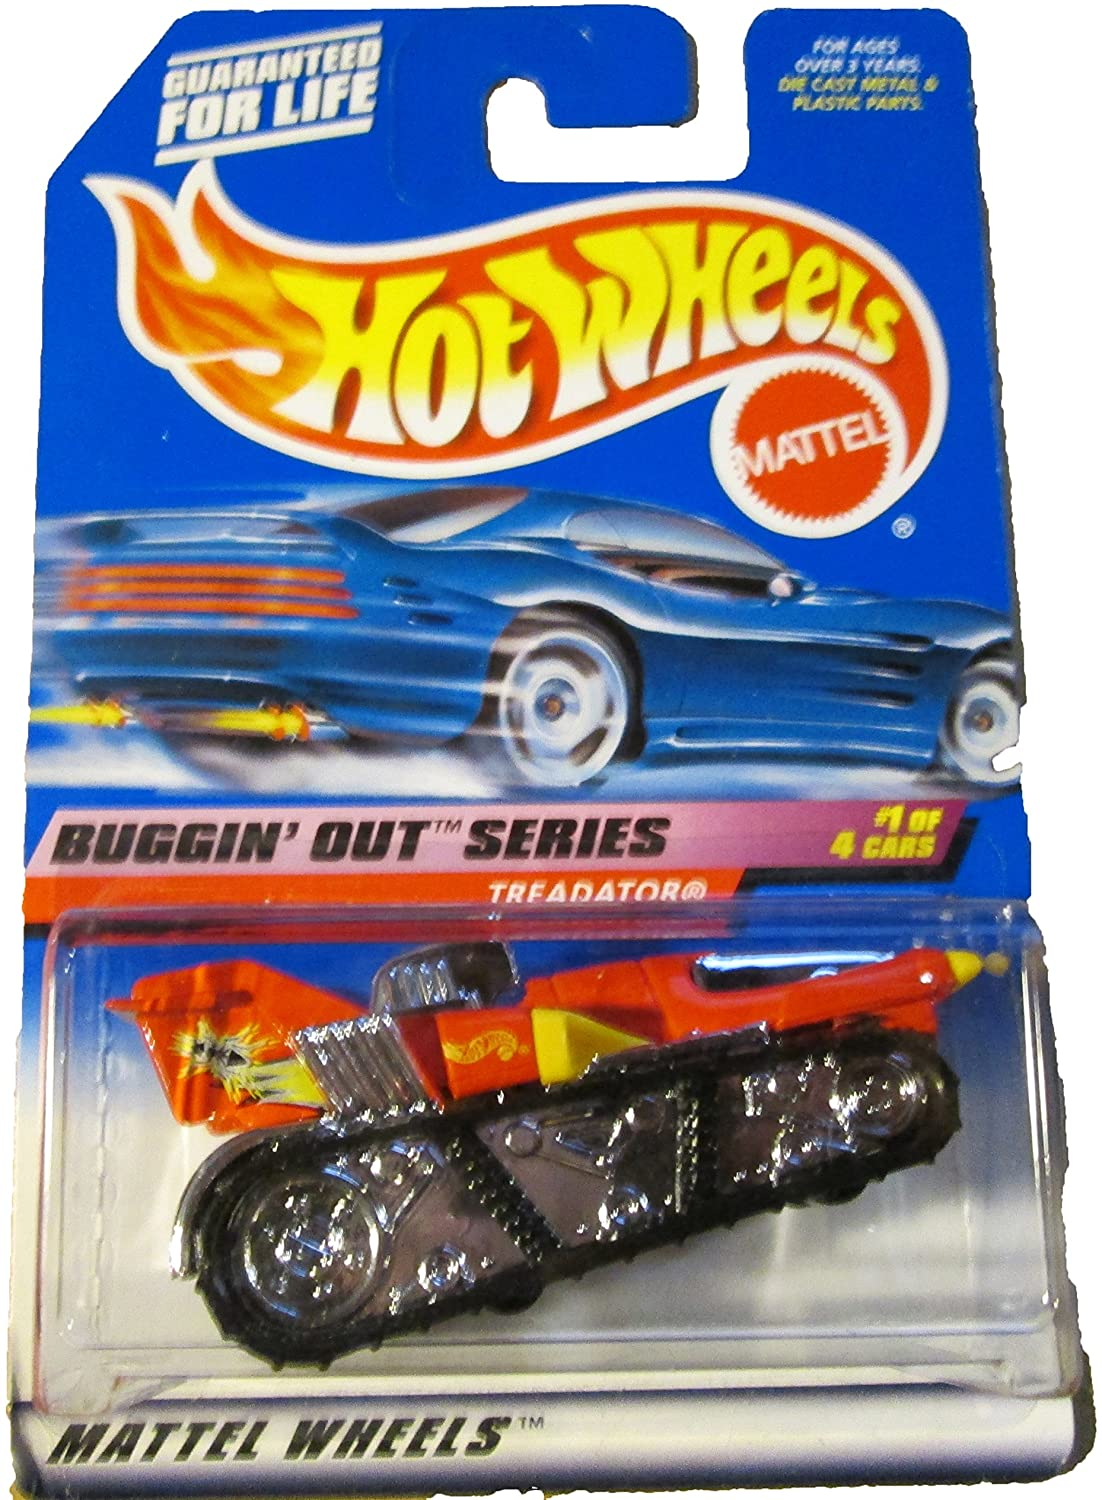 Hot Wheels 1999 #941 Buggin' Out Series TREADATOR 1:64 Scale